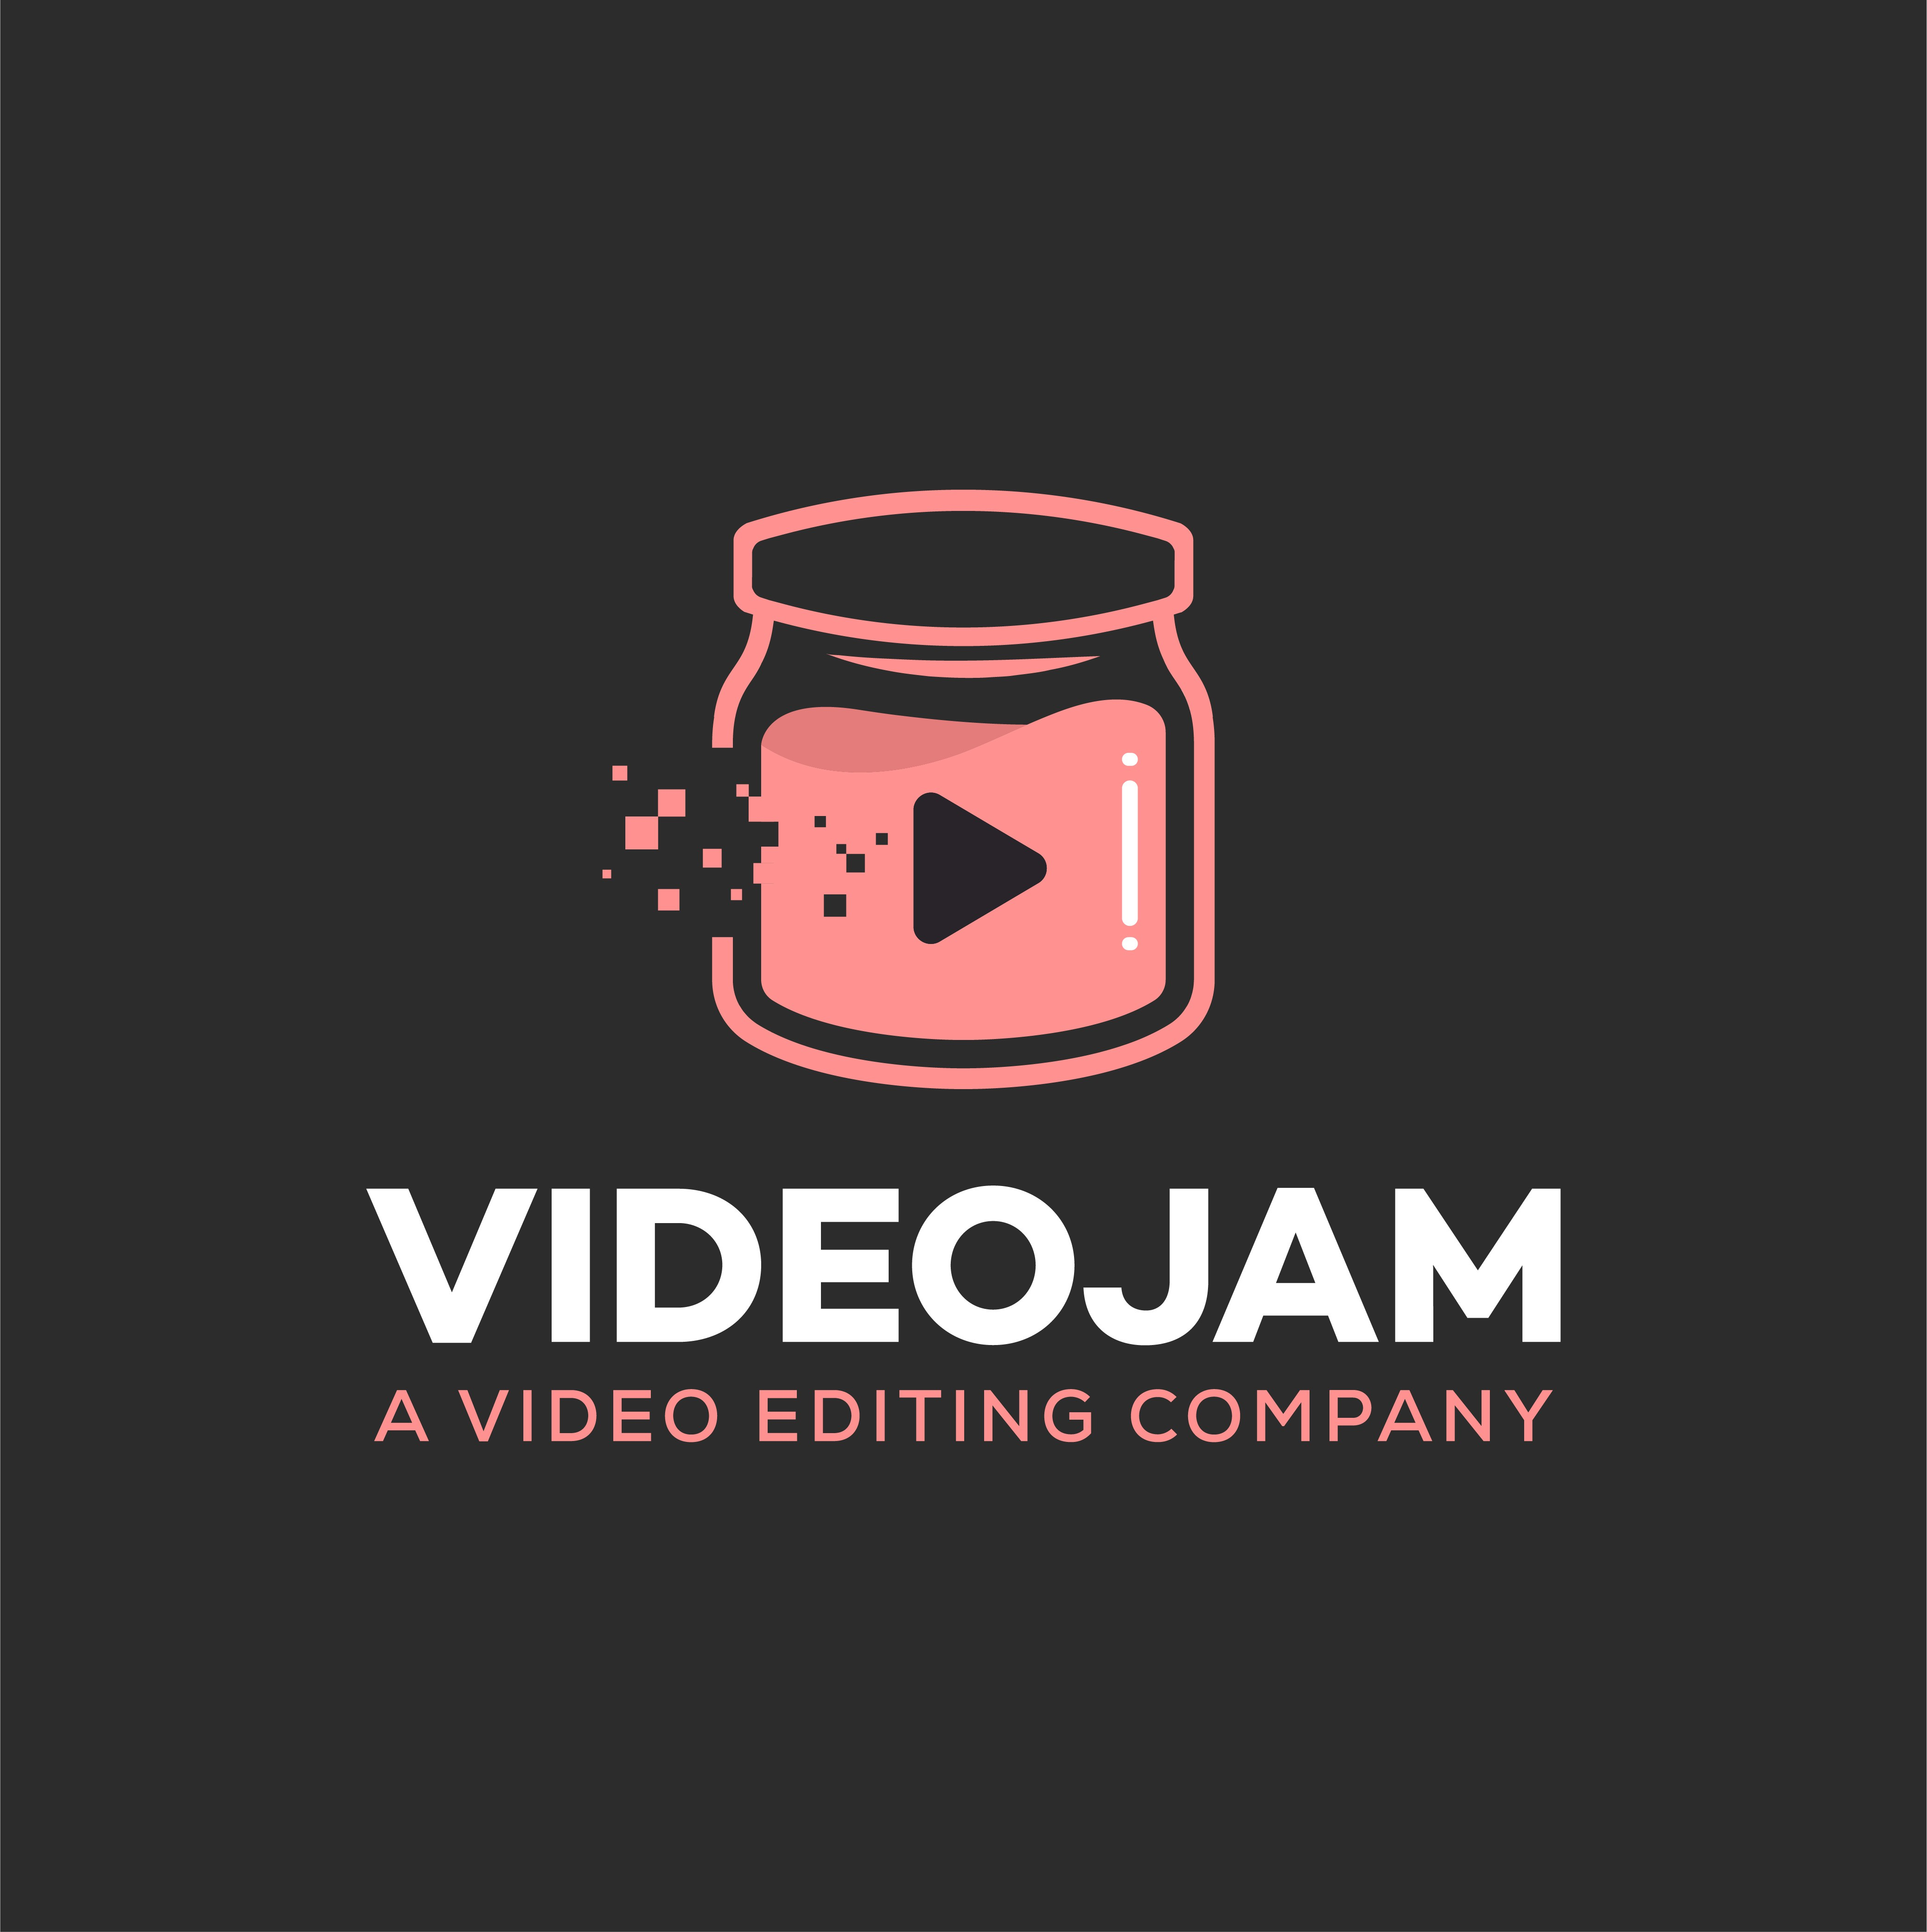 Cool logo for video editing company combining creativity and tech